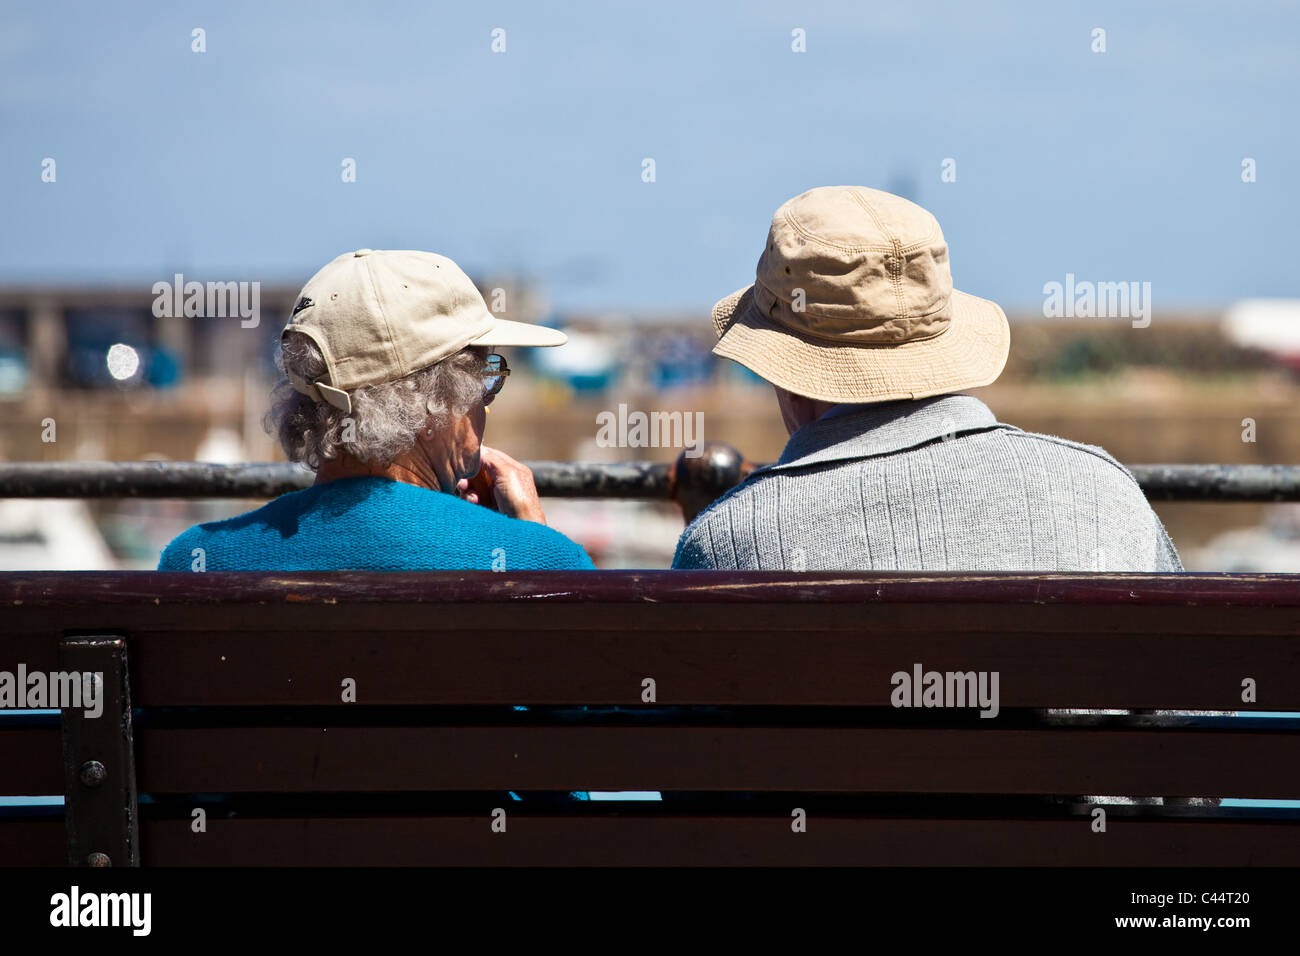 An elderly couple relaxing on a bench in the UK summer - Stock Image